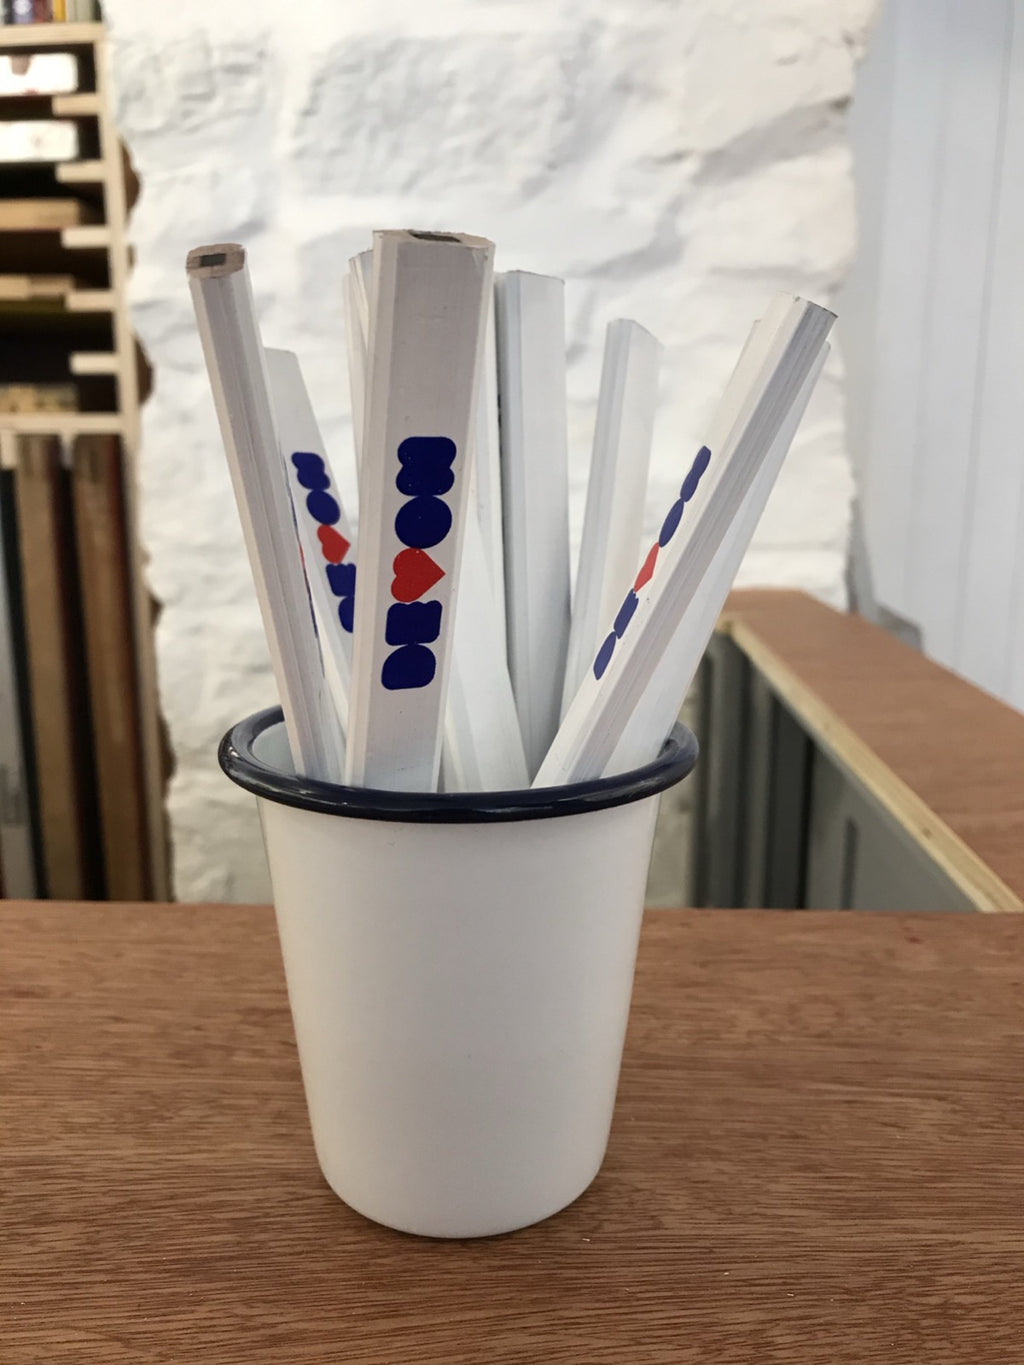 Carpenters pencils in a Falconware tumbler pot, on a desk in Salty's Studio - pencils have a graphic reading DEVON